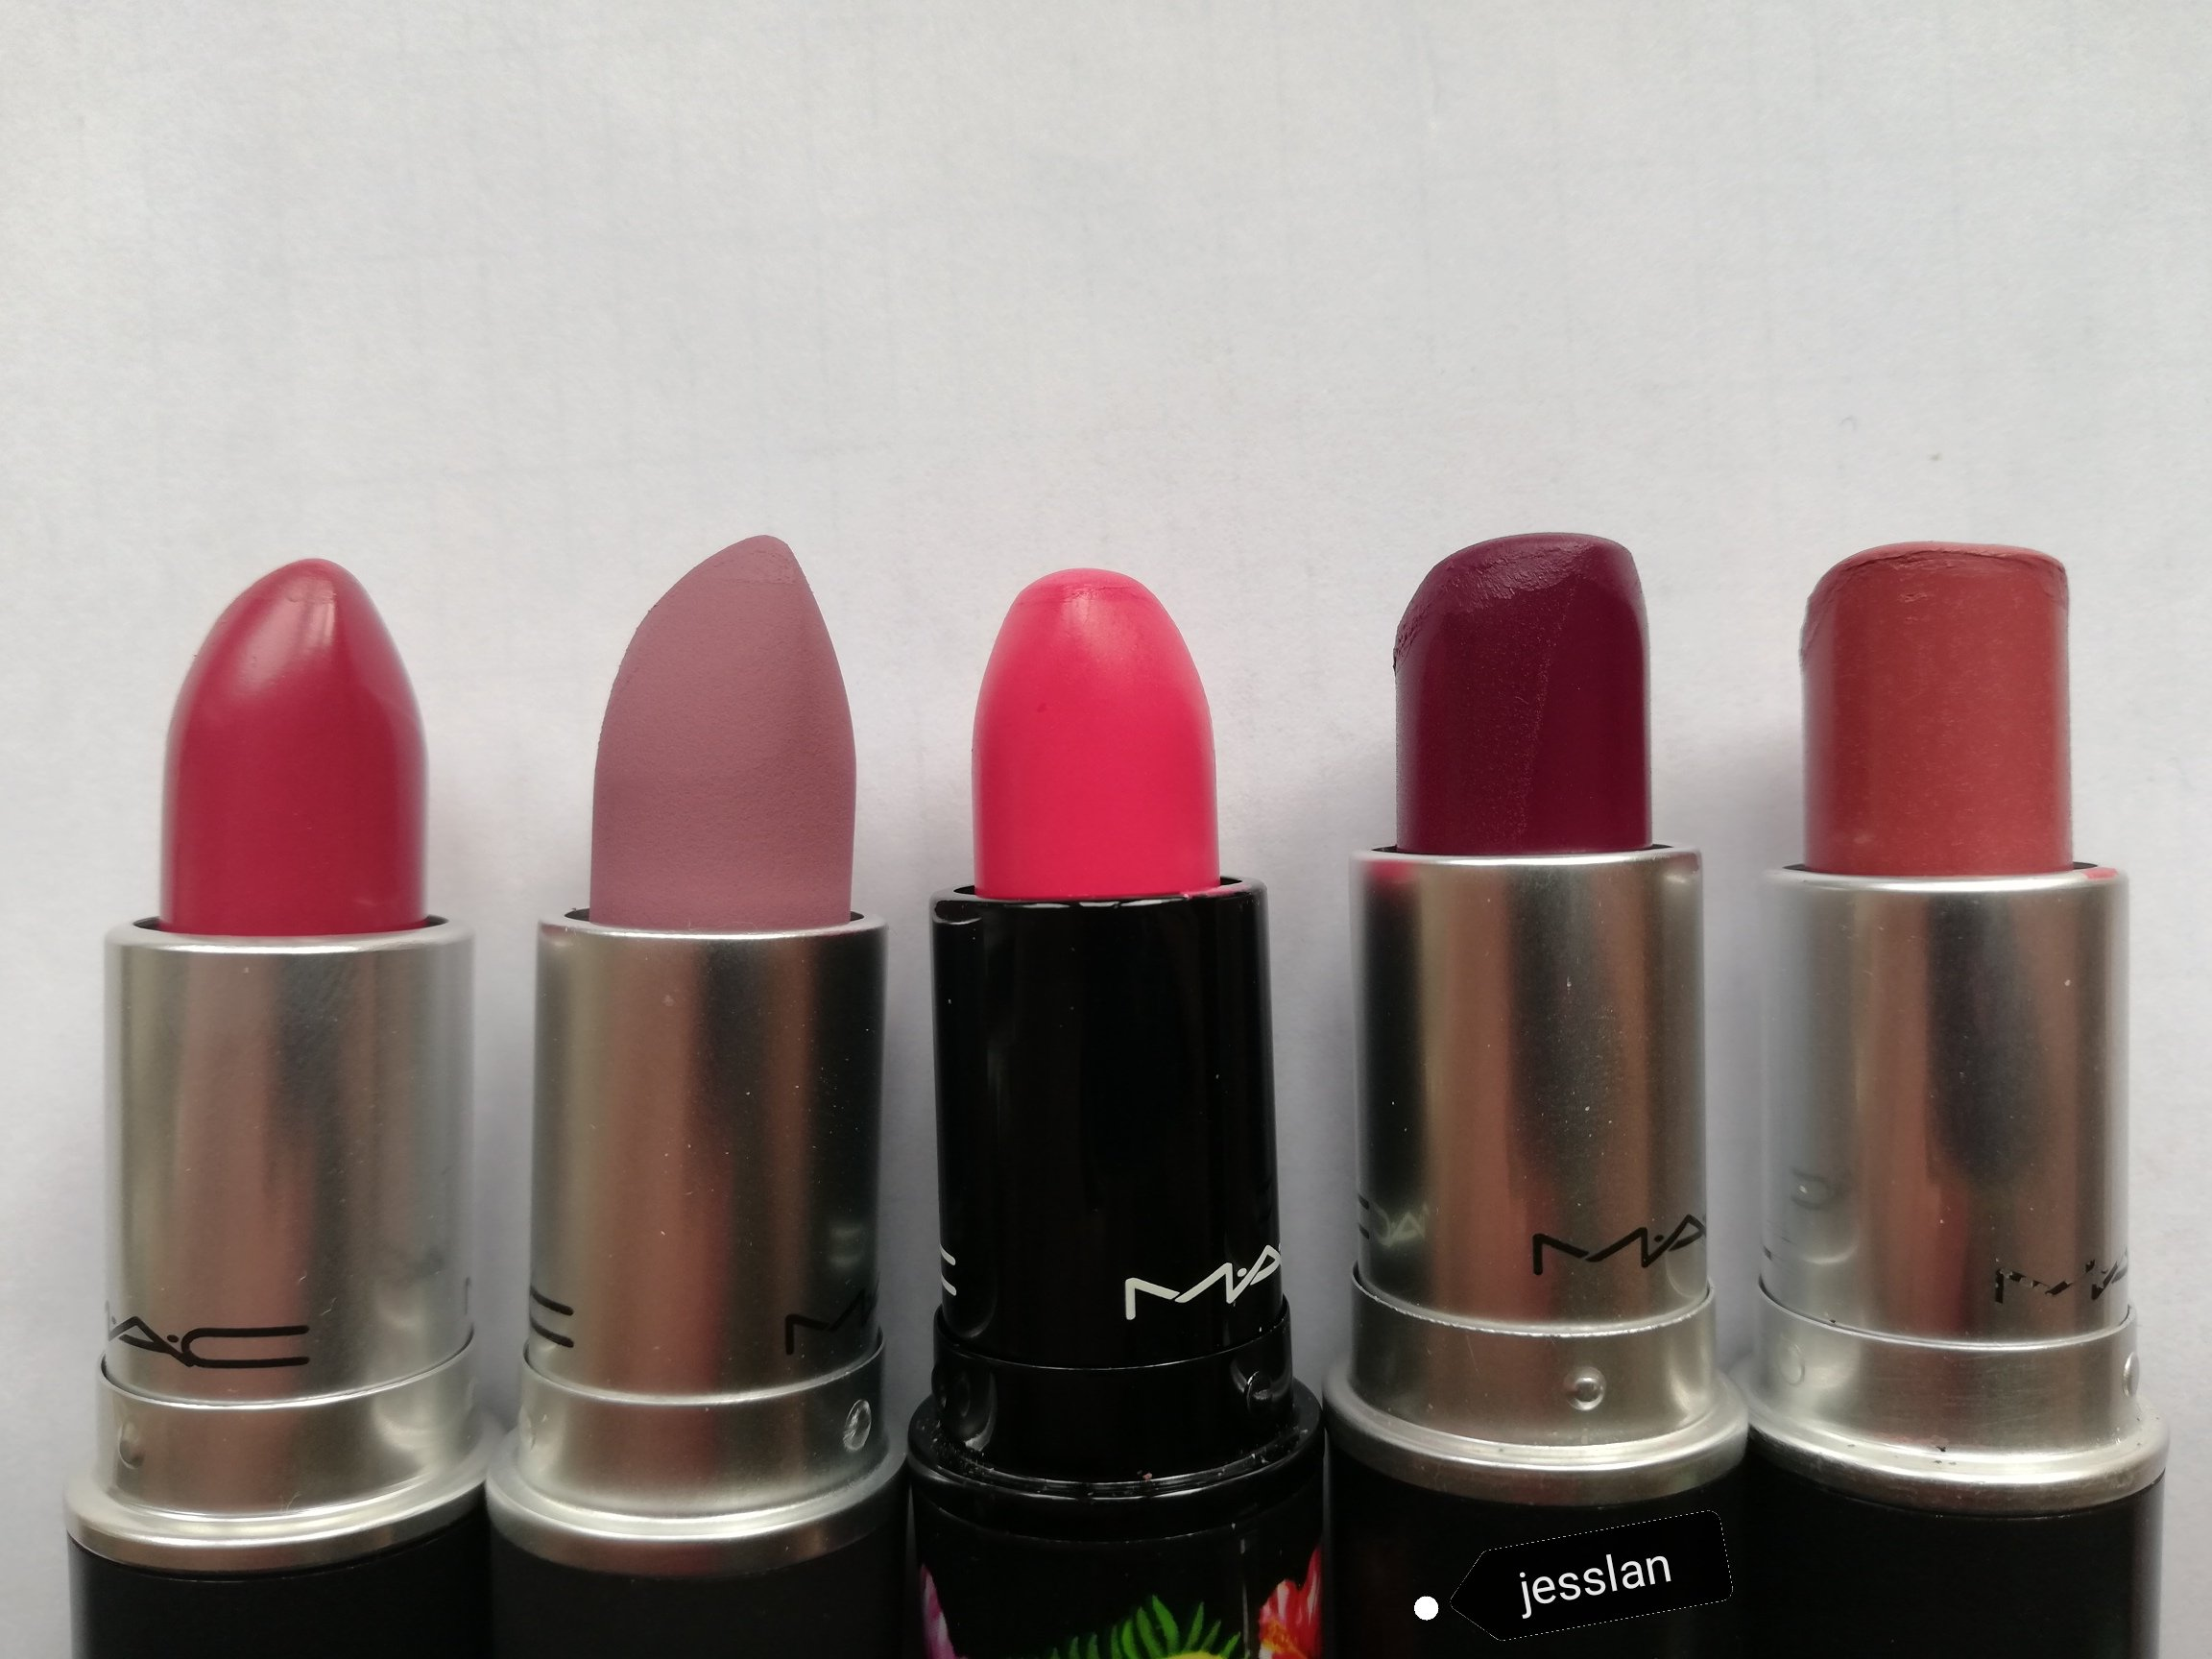 Mac Cosmetics - Craving, Ripened, Love at first bite, Rebel, Twig